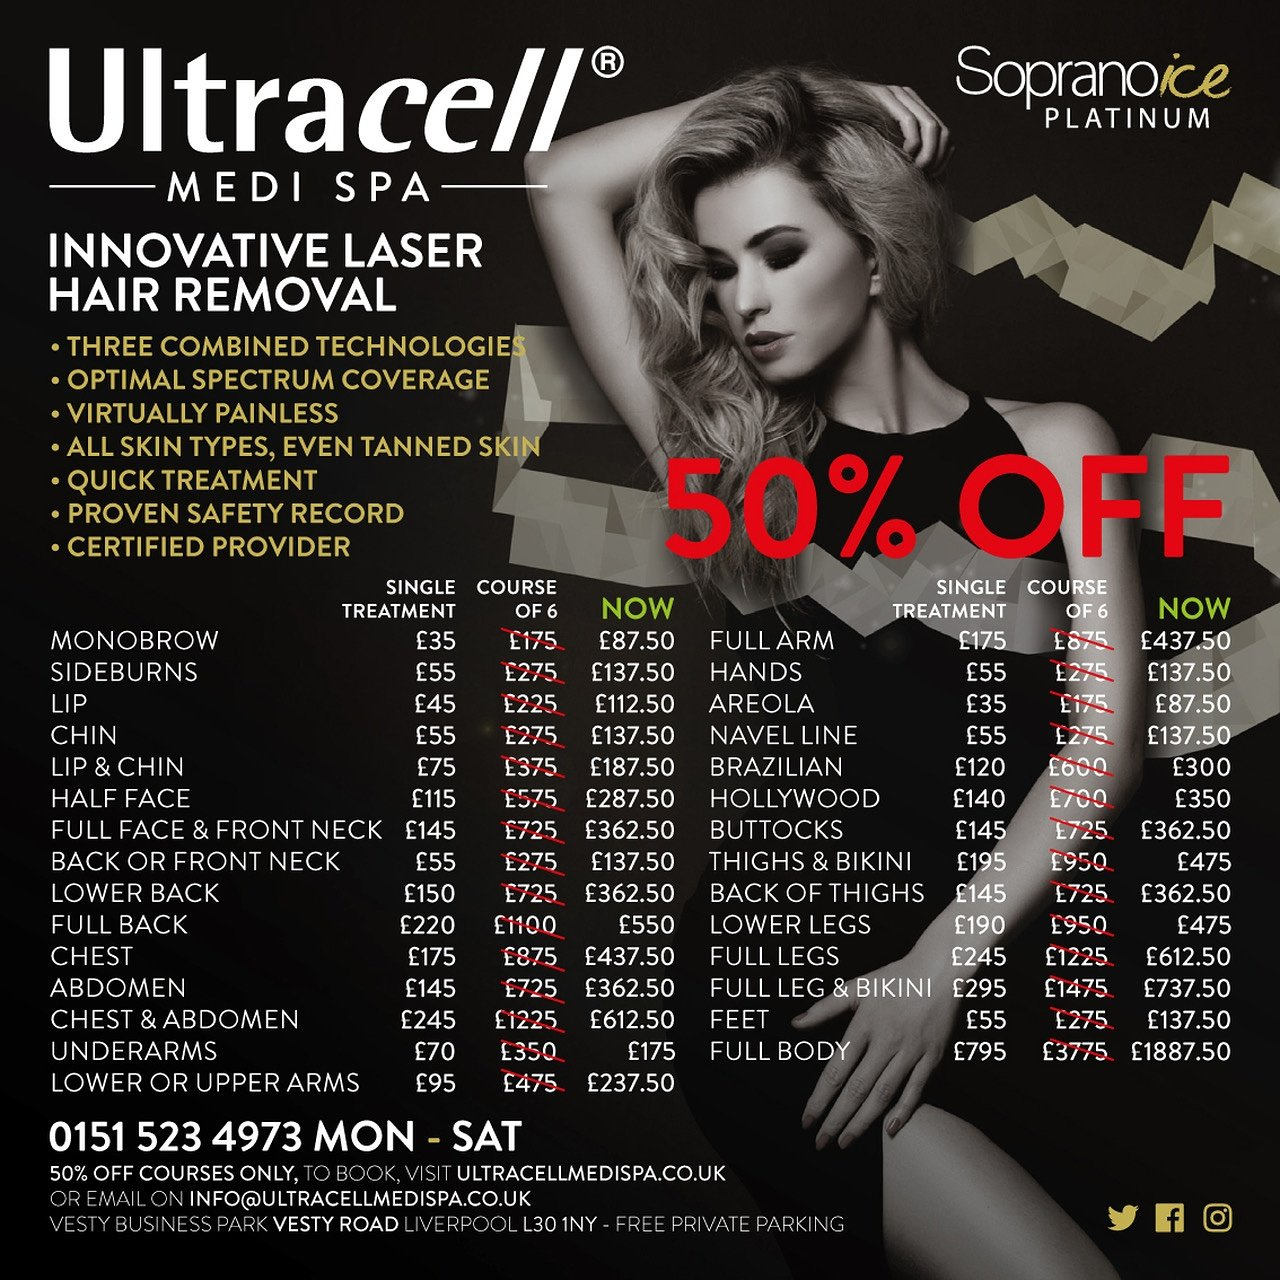 Ultracell medi spa 50 off laser hair removal courses clients describe the session as quick efficient and painless xflitez Choice Image